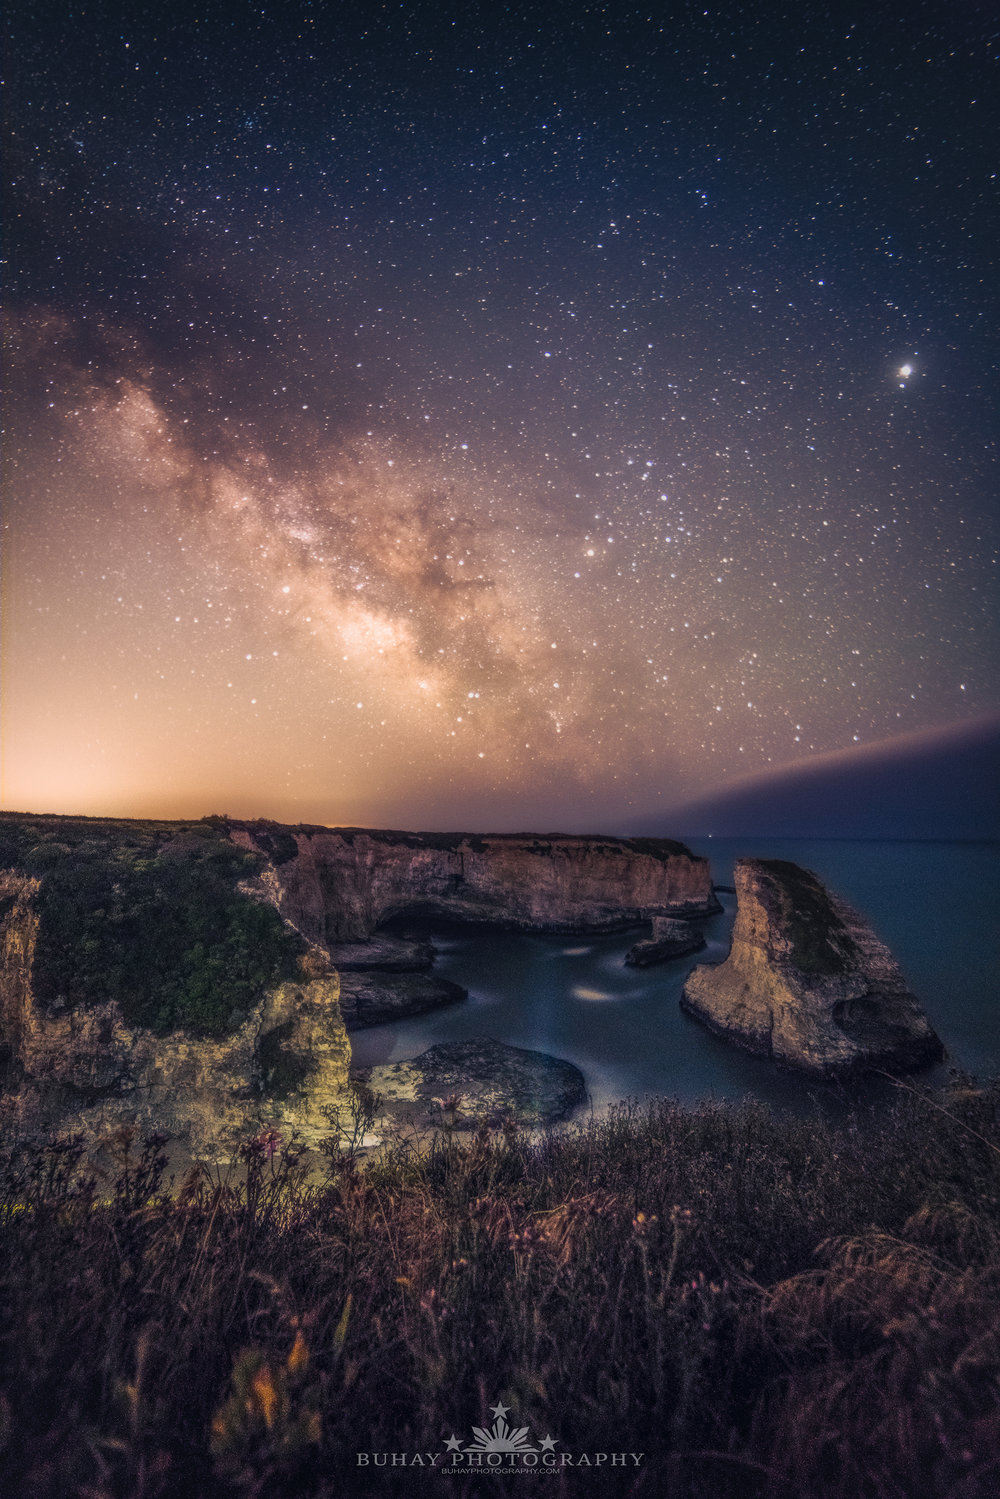 Shark Fin Cove 2018 Buhay Photography